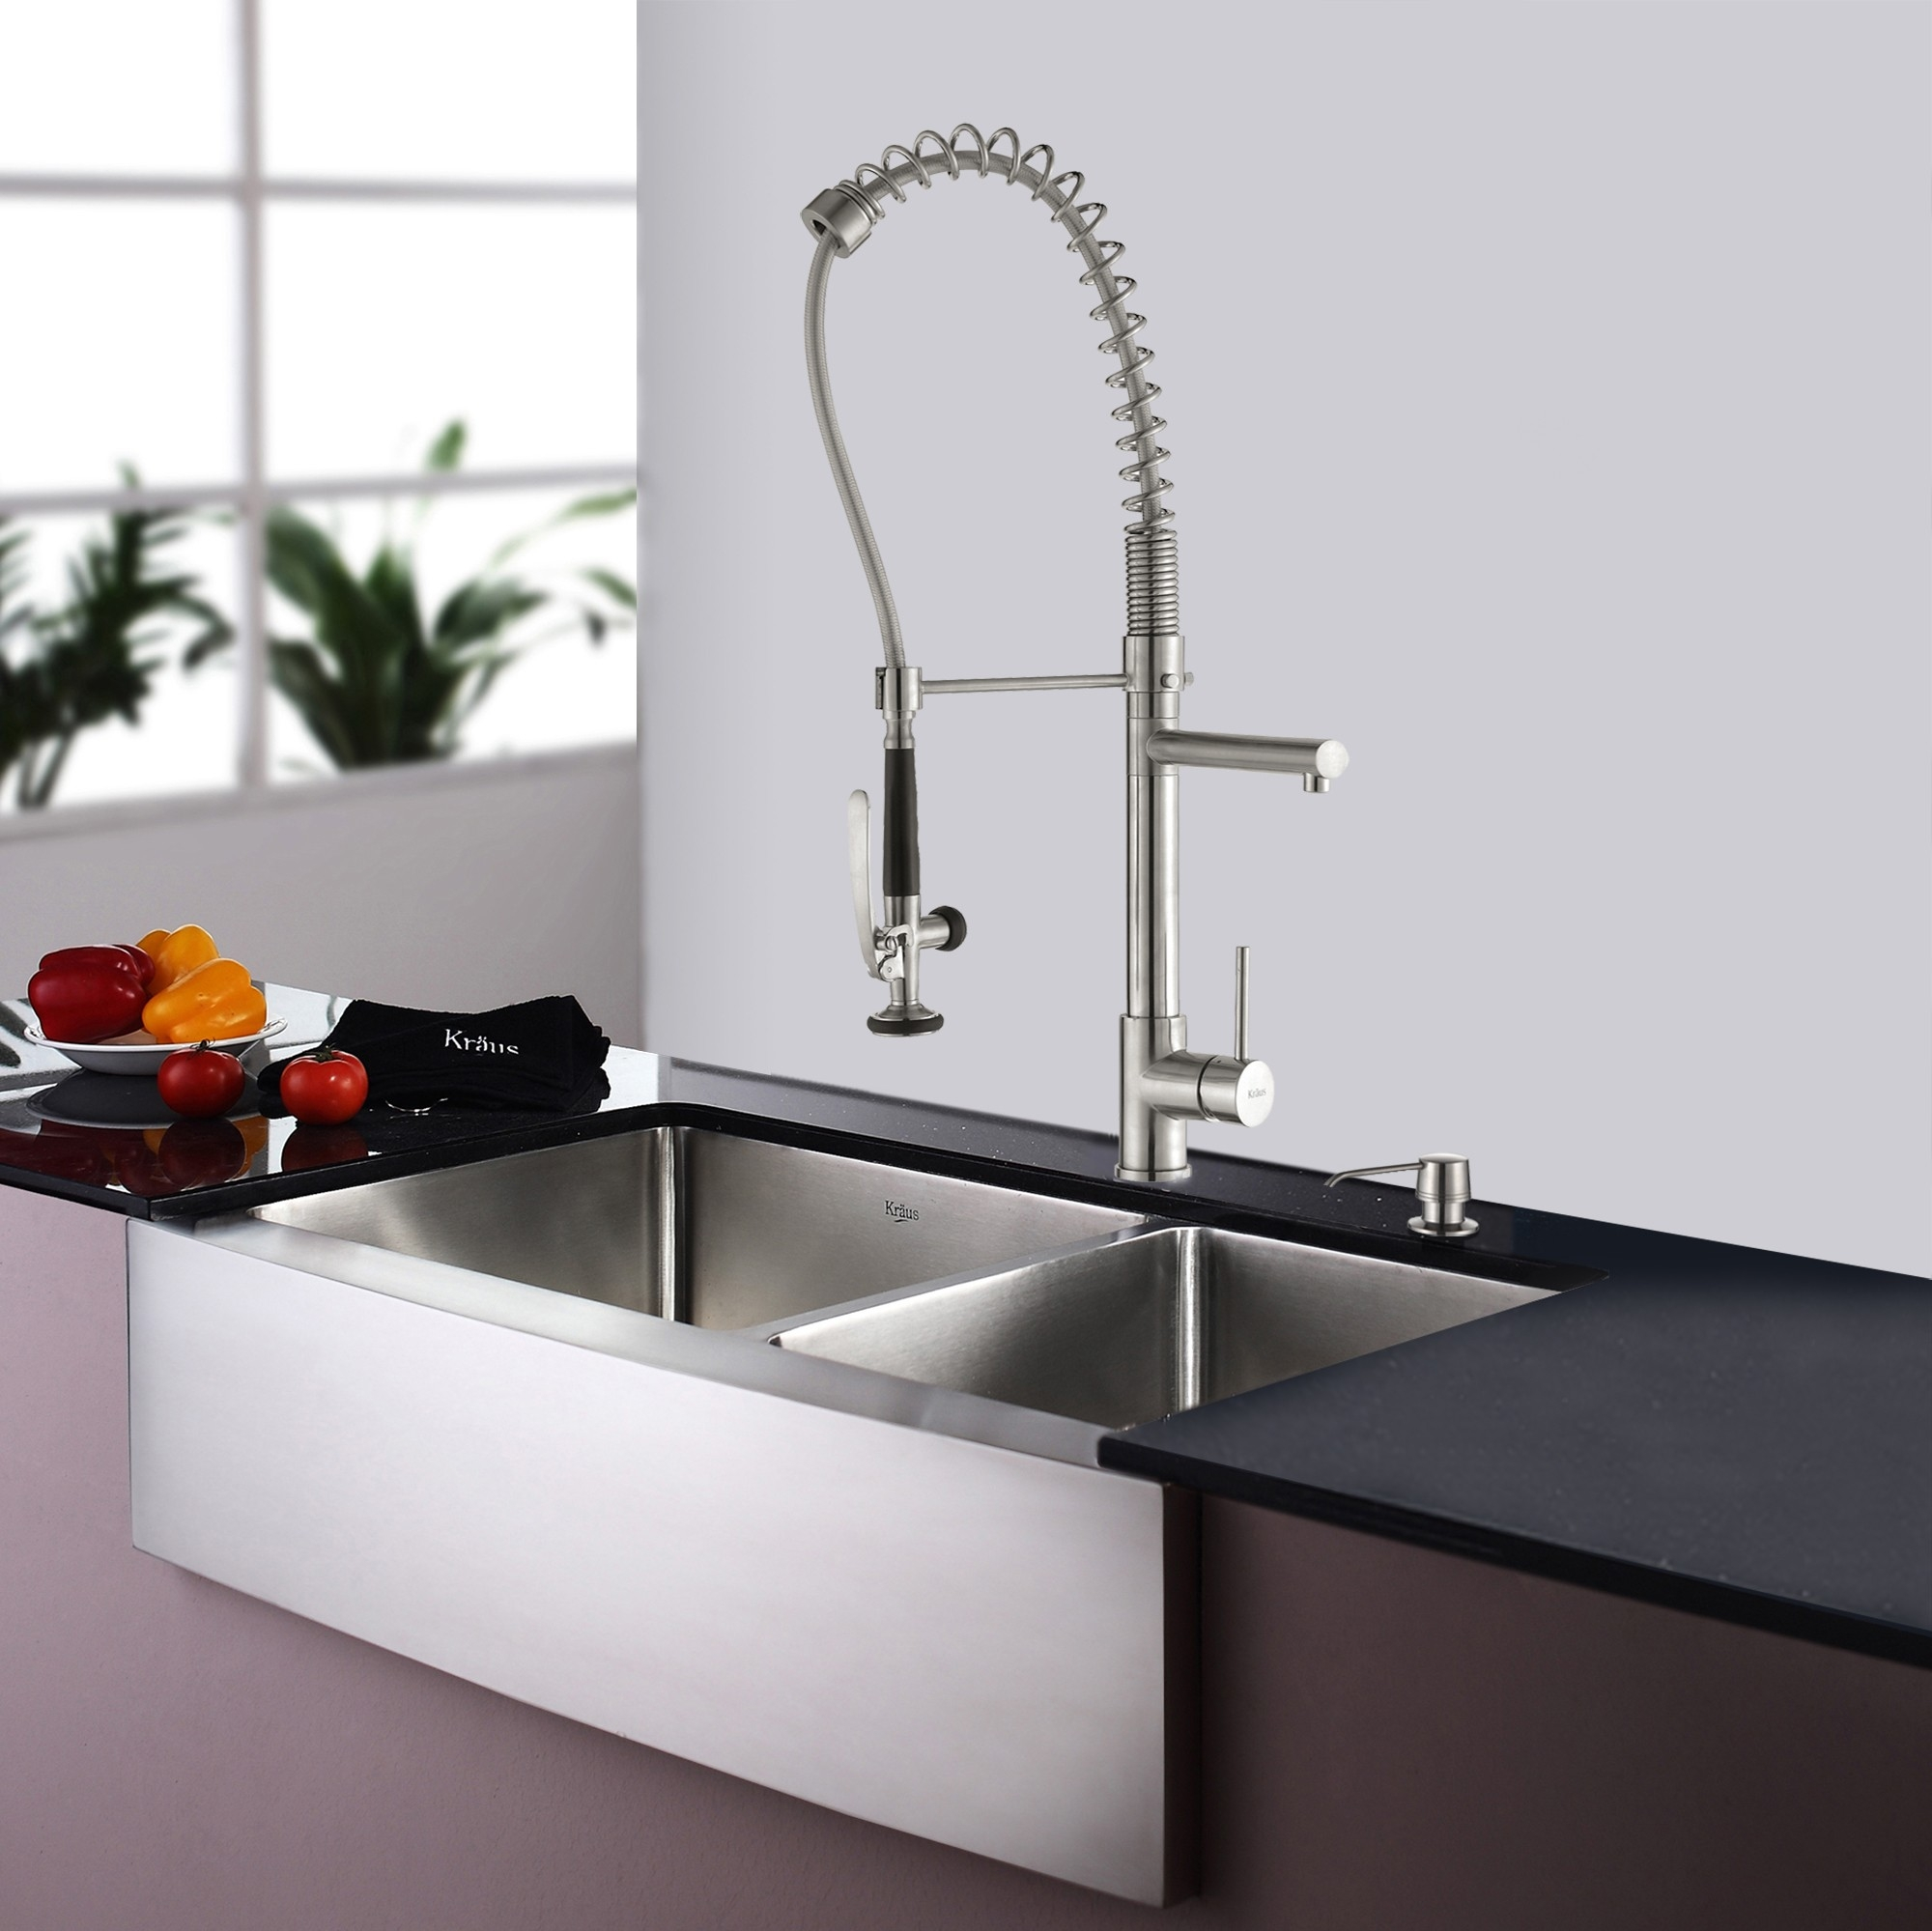 decor stainless steel danze kitchen faucet with soap dispenser regarding dimensions 2000 x 1999